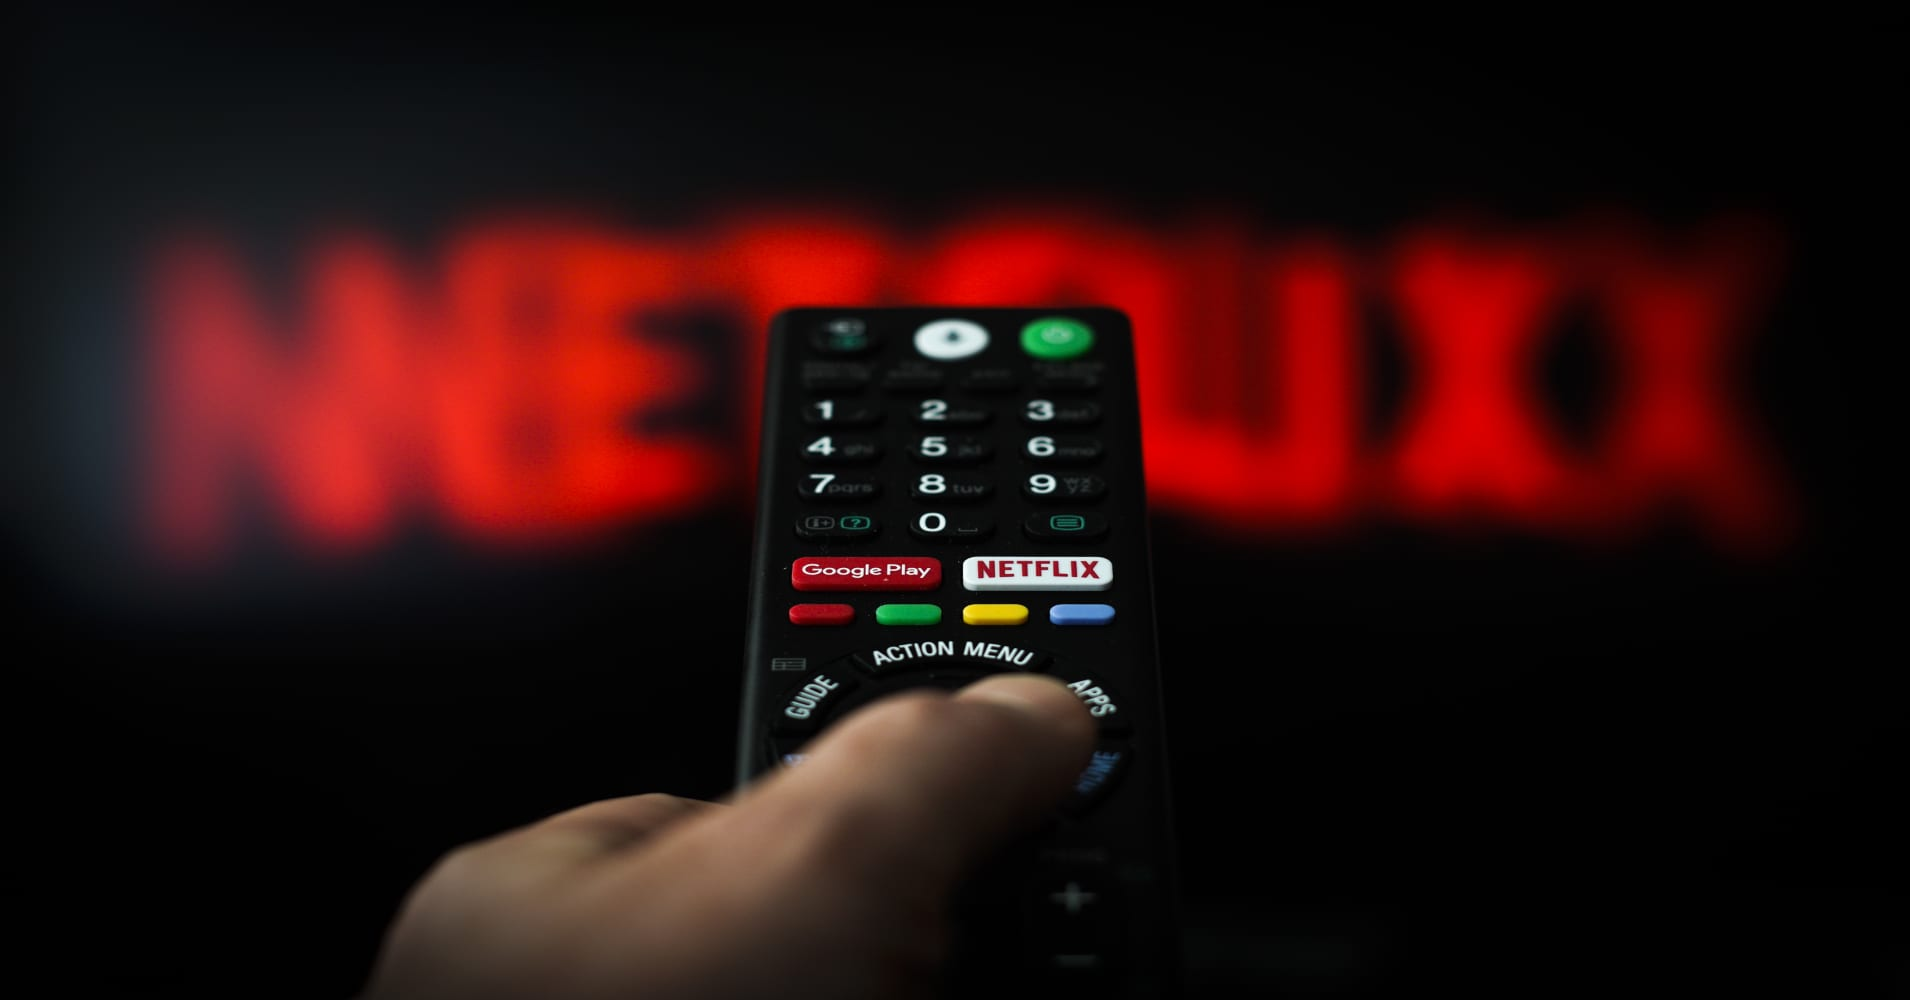 Why Netflix says it had a rare subscriber loss in Q2 2019